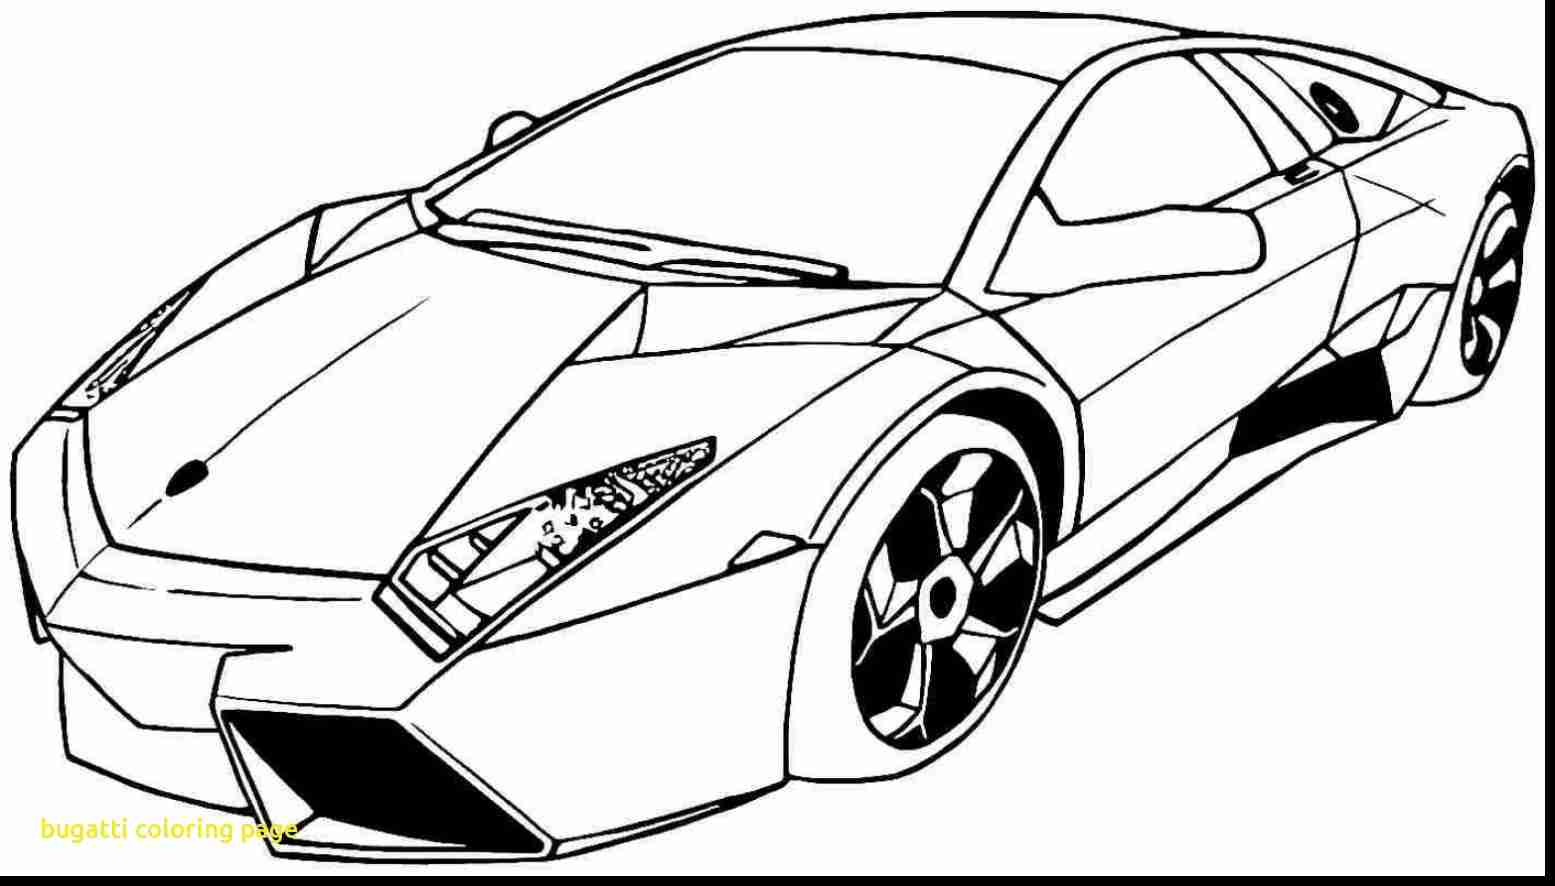 Bugatti Car Coloring Pages at GetDrawings | Free download